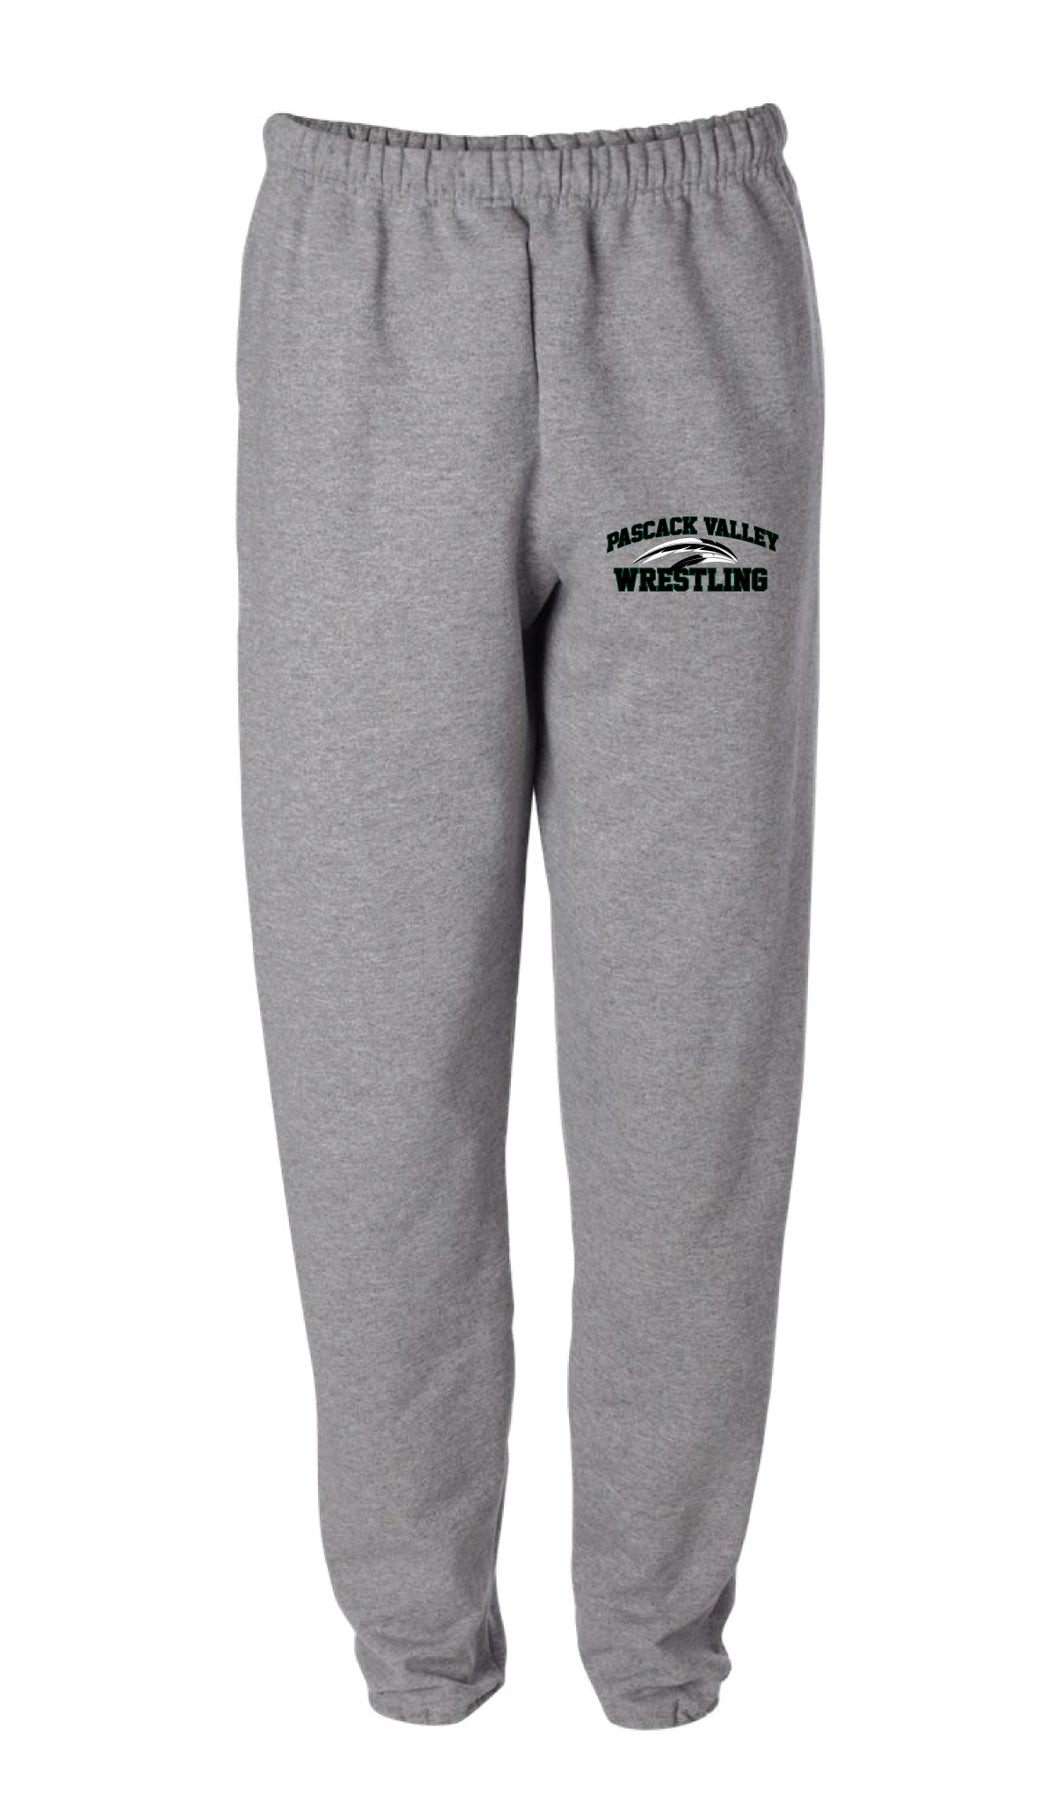 Pascack Valley Wrestling Cotton Sweatpants - Gray - 5KounT2018